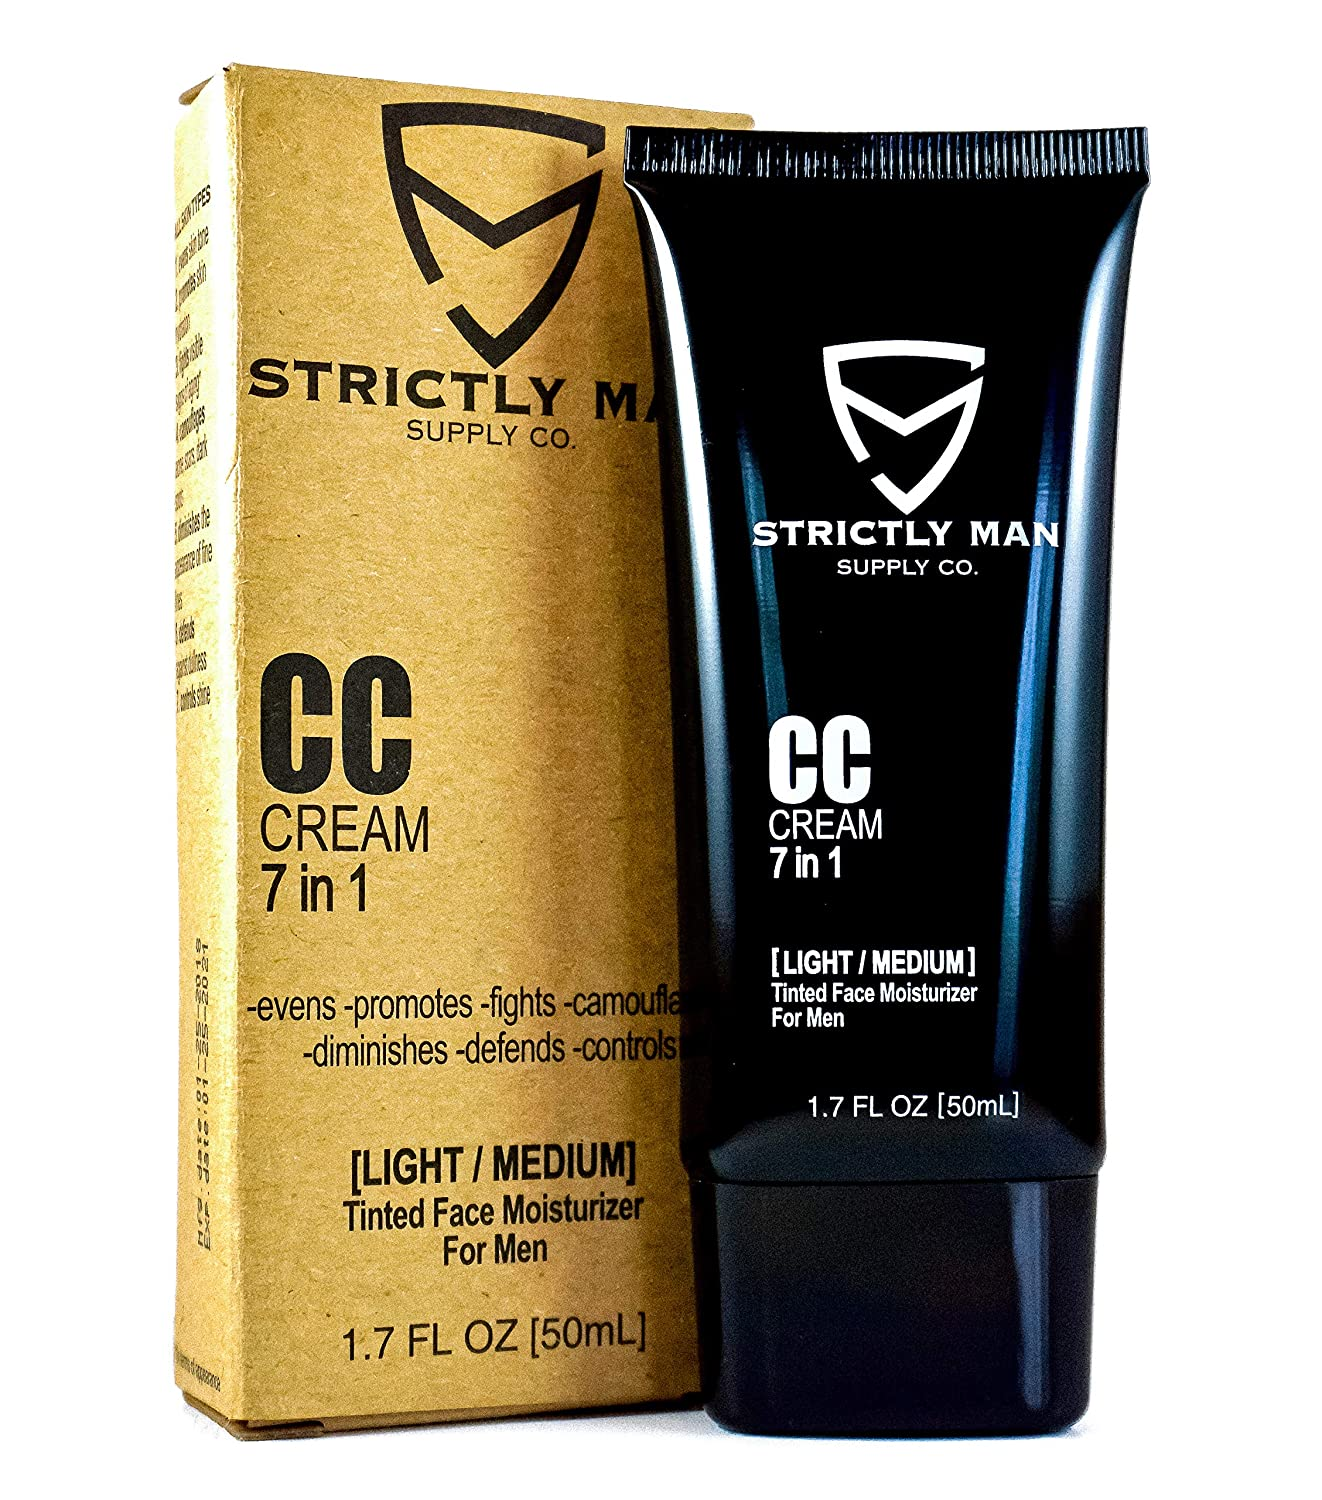 Strictly Man Supply Co. CC Cream for Men